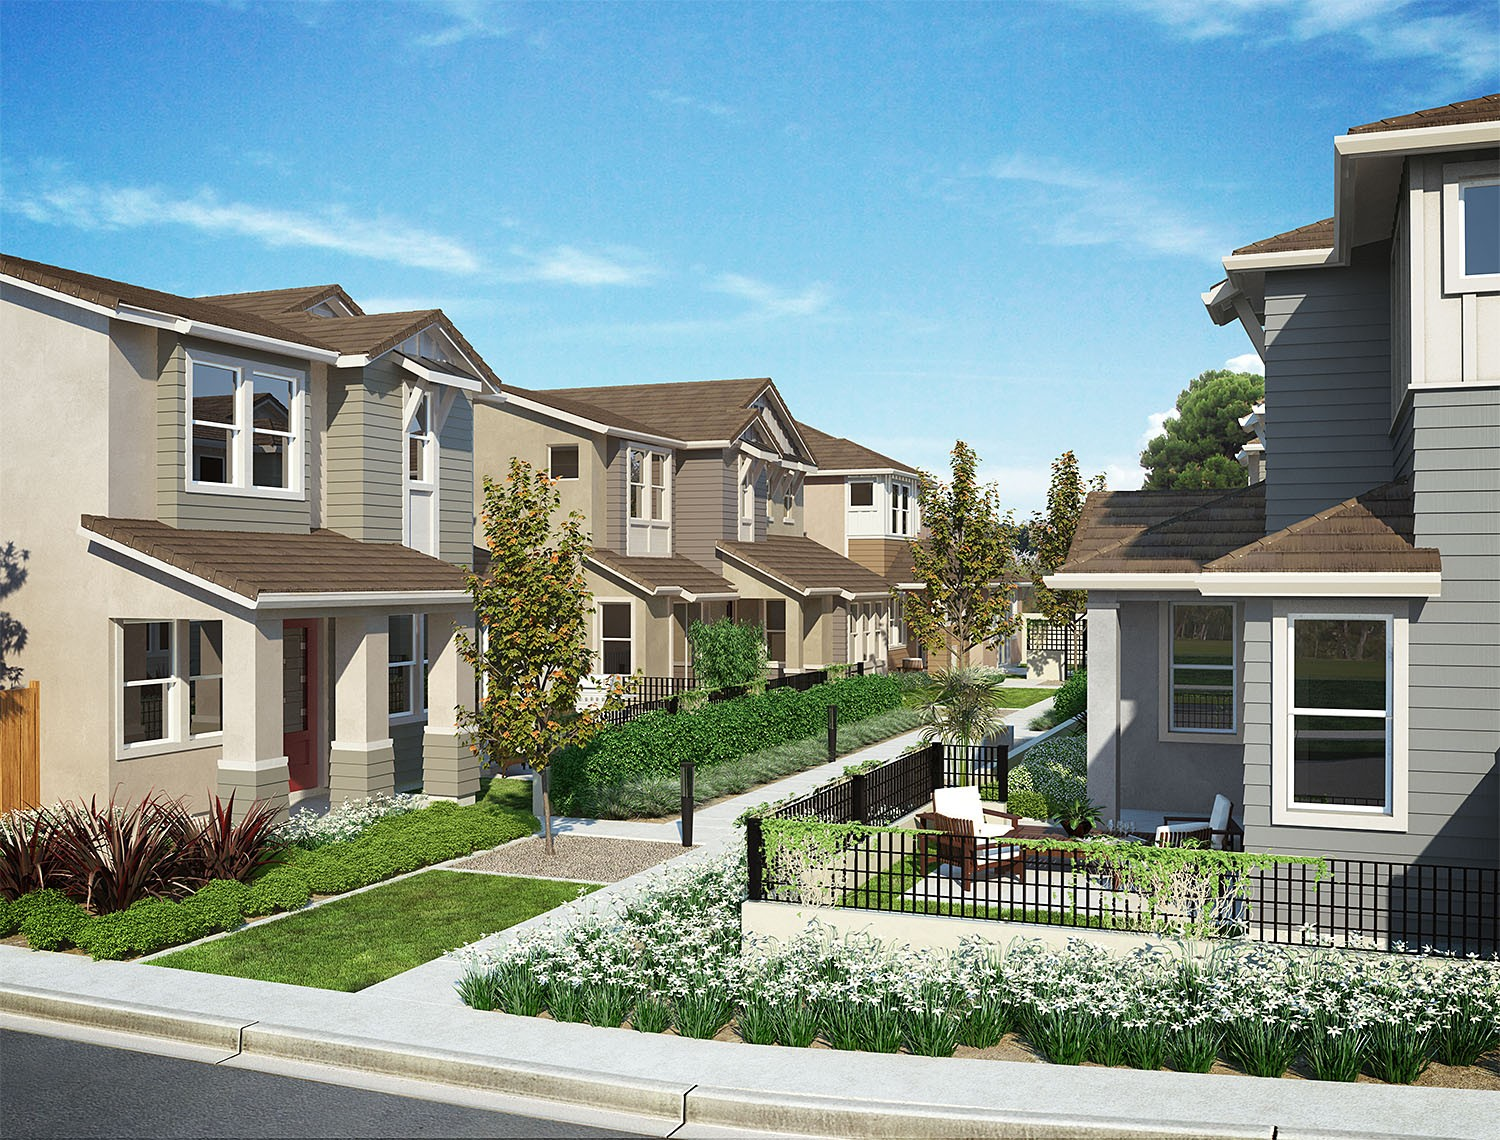 New Homes For Sale In Rocklin Ca